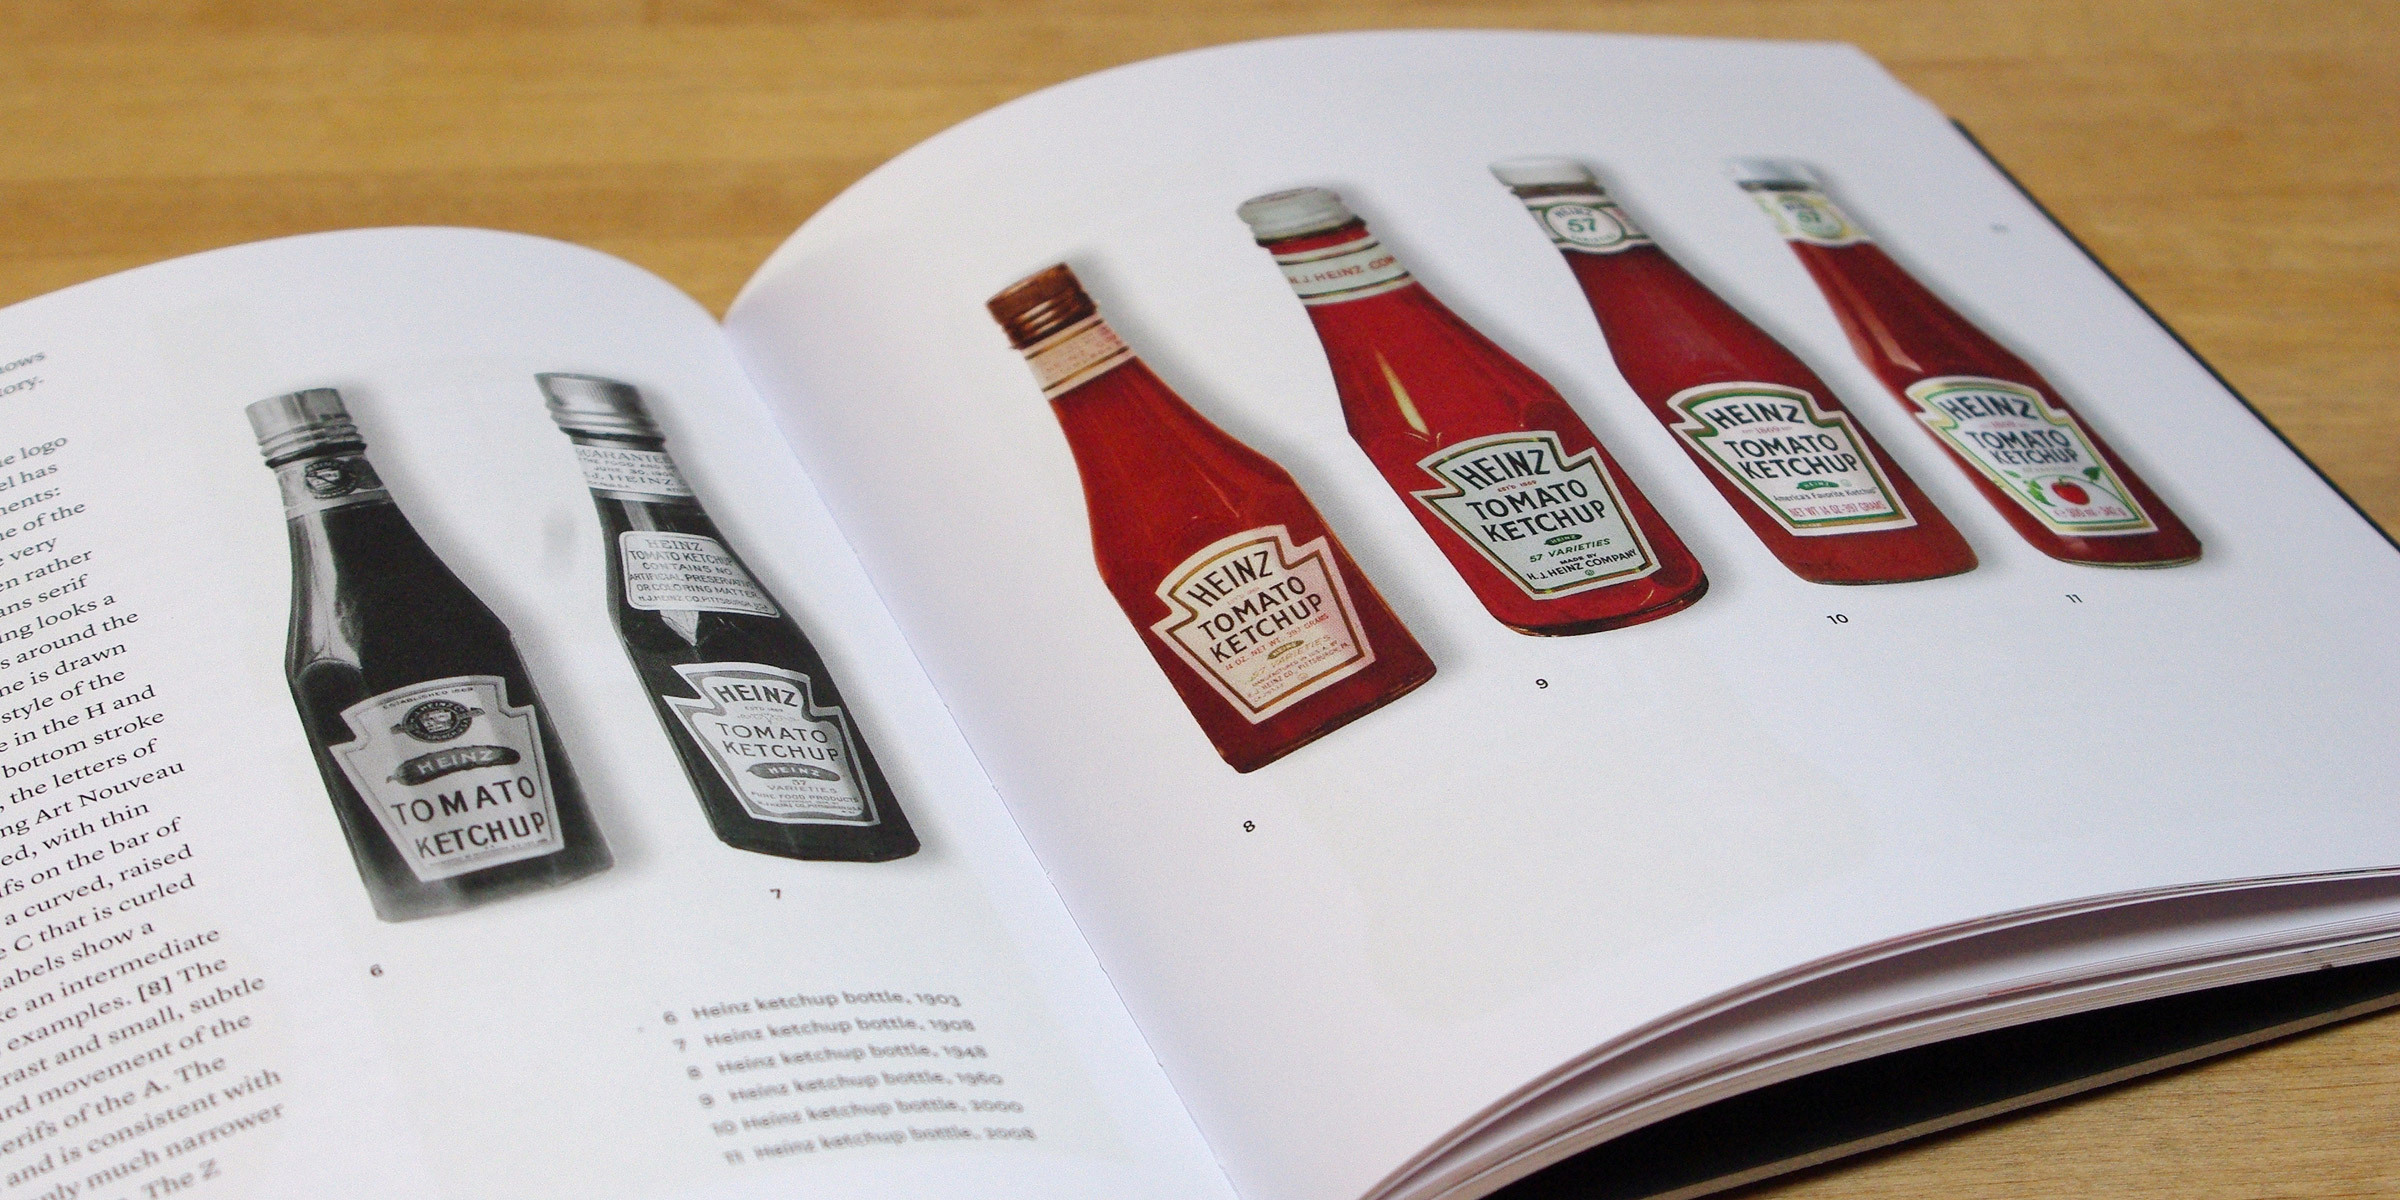 history-of-heinz-ketchup-bottles